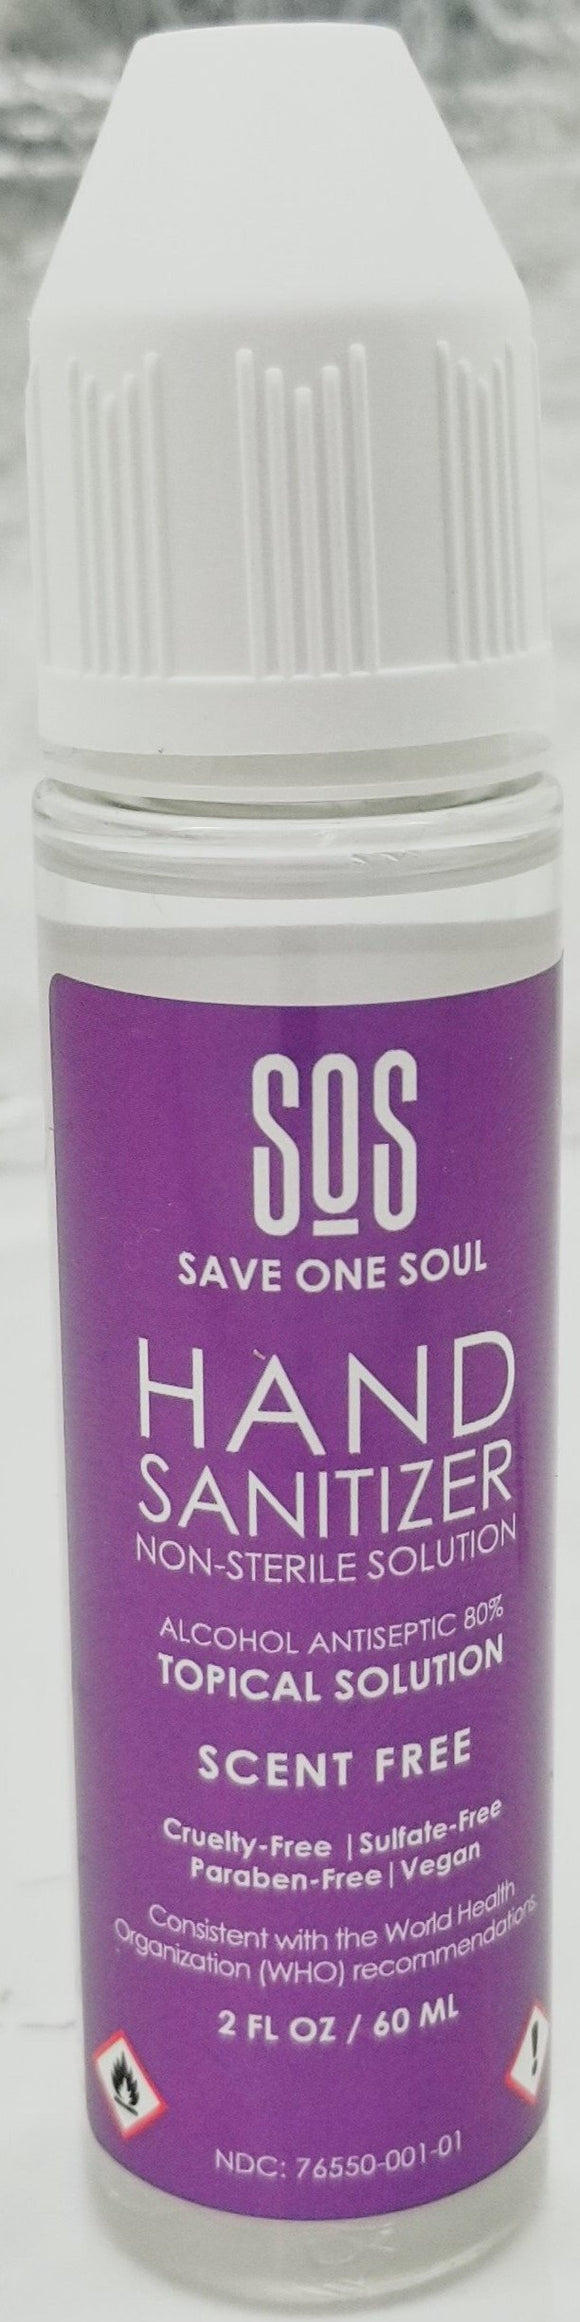 HAND SANITIZER NON-STERILE SOLUTION | 2 FL OZ (60ML) | SAVE ONE SOUL (SOS) | SCENT FREE | ALCOHOL ANTISEPTIC 80% TROPICAL SOLUTION - CBD Oil Online Store | Shop CBD Oil, Gummies, Balm, Capsules, Disposable, CBD For Pets, CBD Lotion, CBD Vape Devices & Cartridges,  CBD Tinctures and Spray